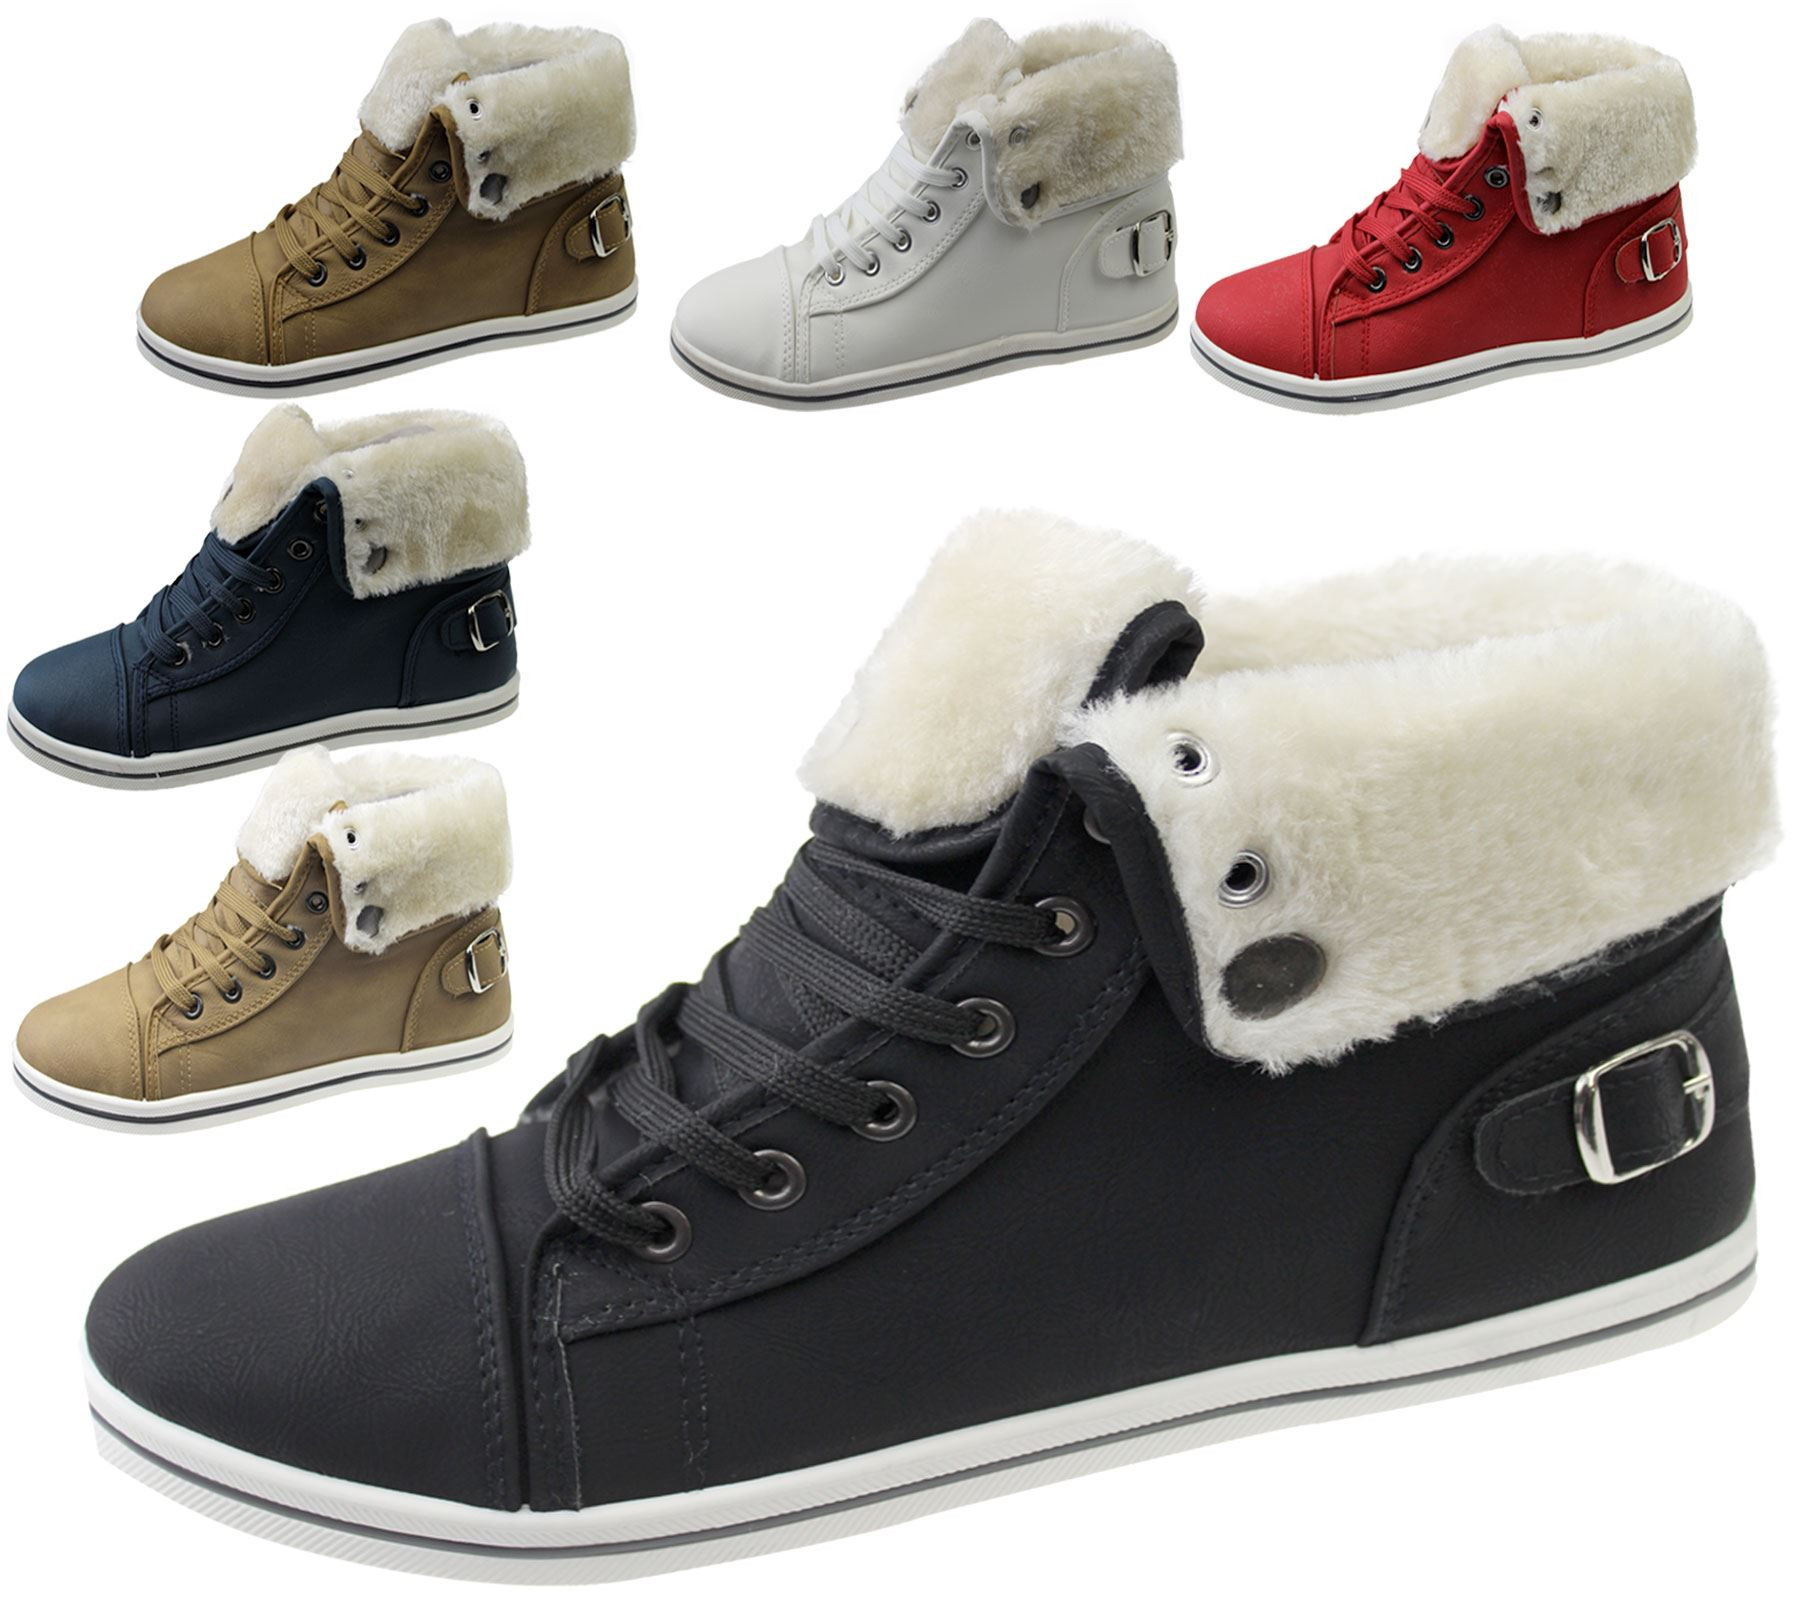 Girls-Boots-Womens-Warm-Lined-High-Top-Ankle-Trainer-Ladies-Winter-Shoes-Size miniatura 43